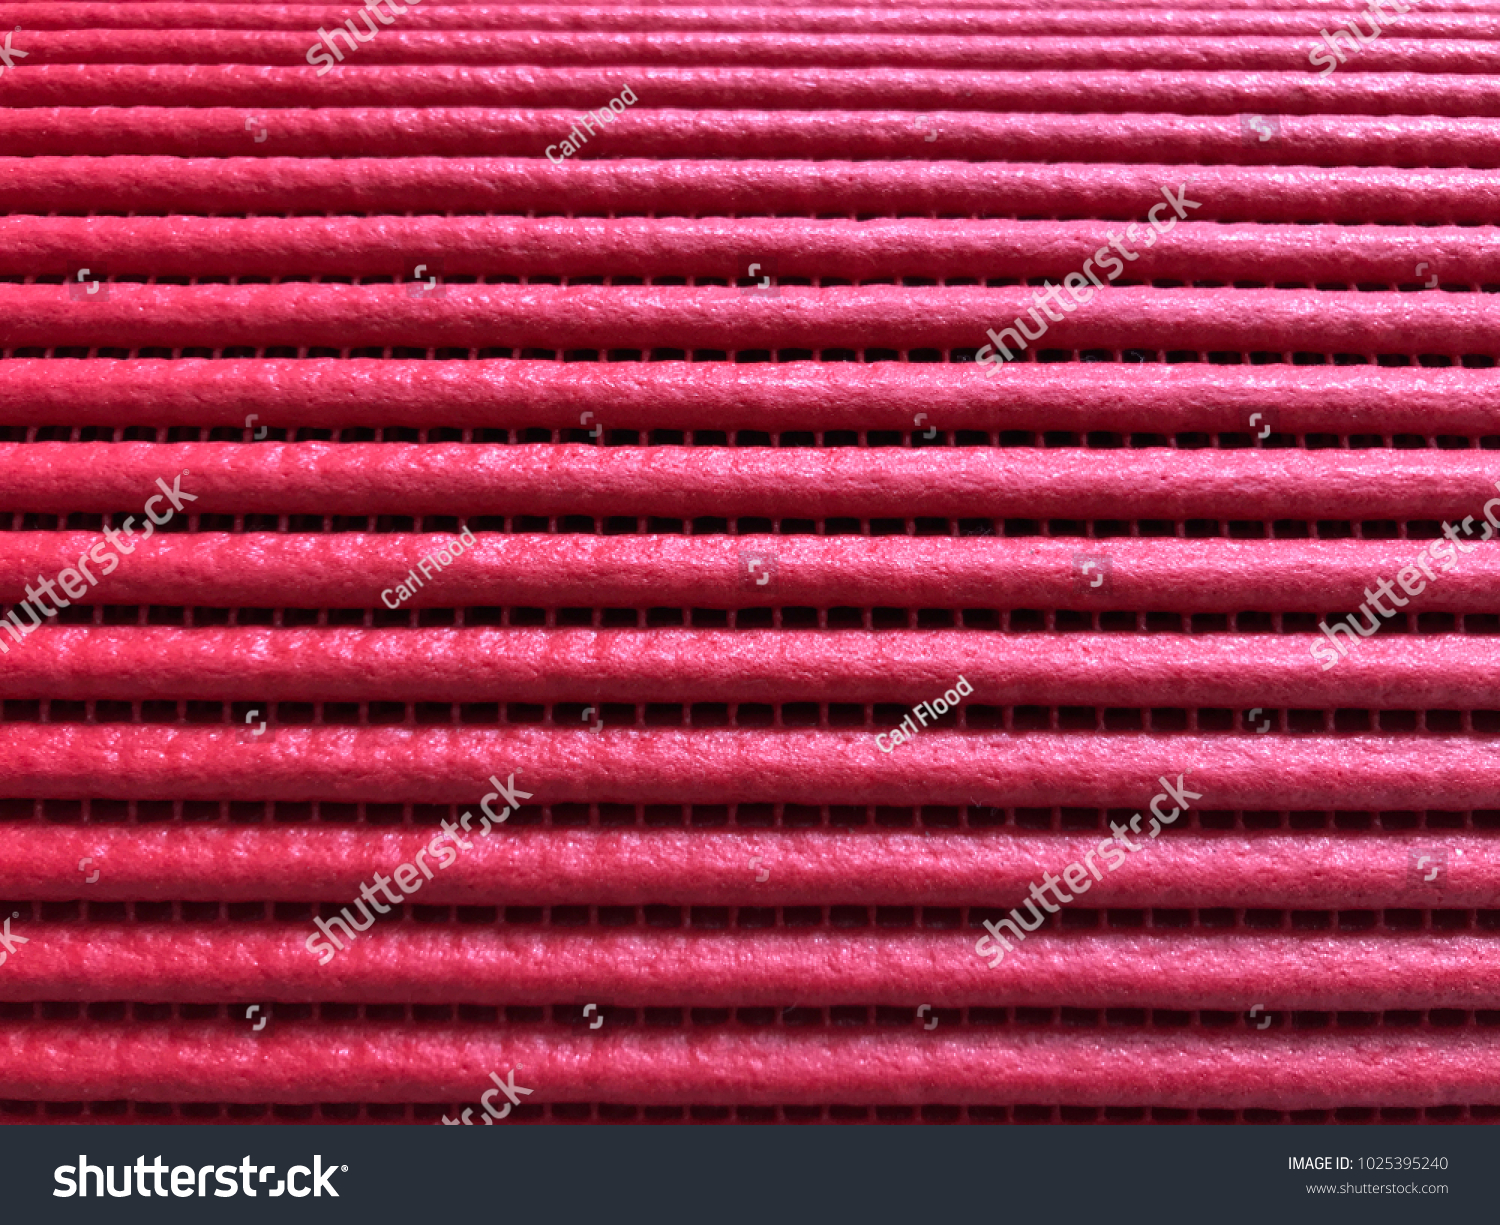 Red Non Slip Rubber Mat Cloth Stock Photo (Edit Now) 1025395240 ...